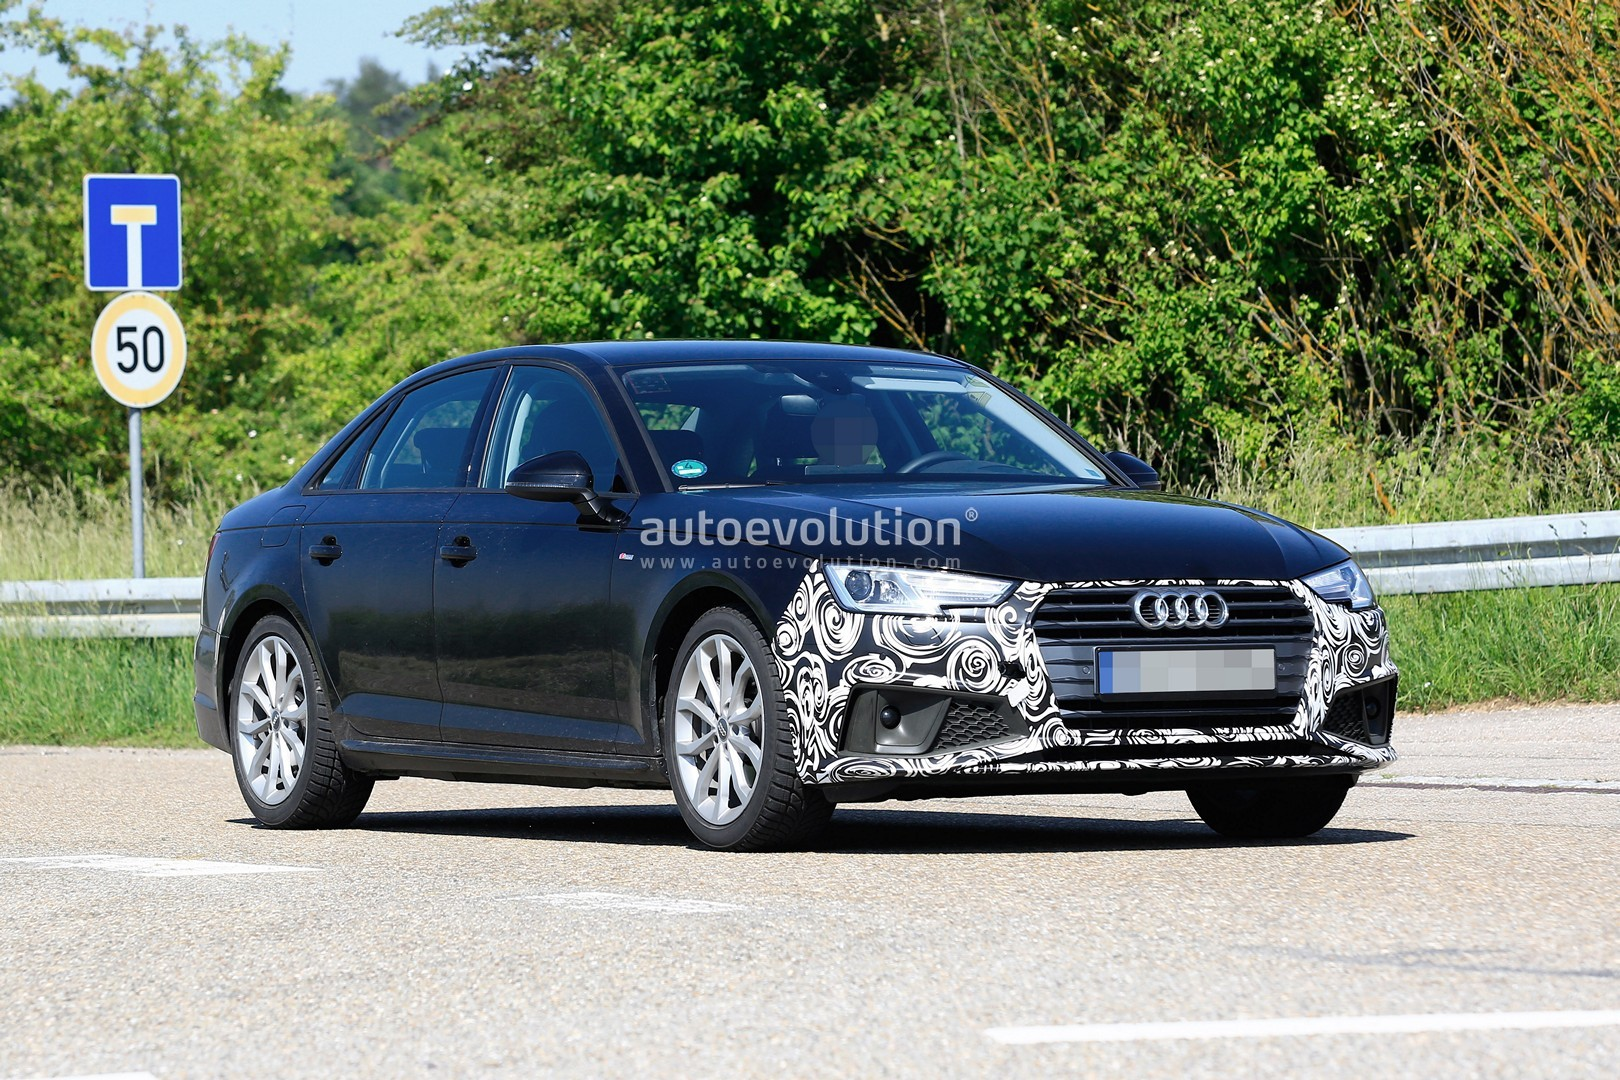 2020 Audi A4 Facelift New Spyshots Show All The Details Autoevolution